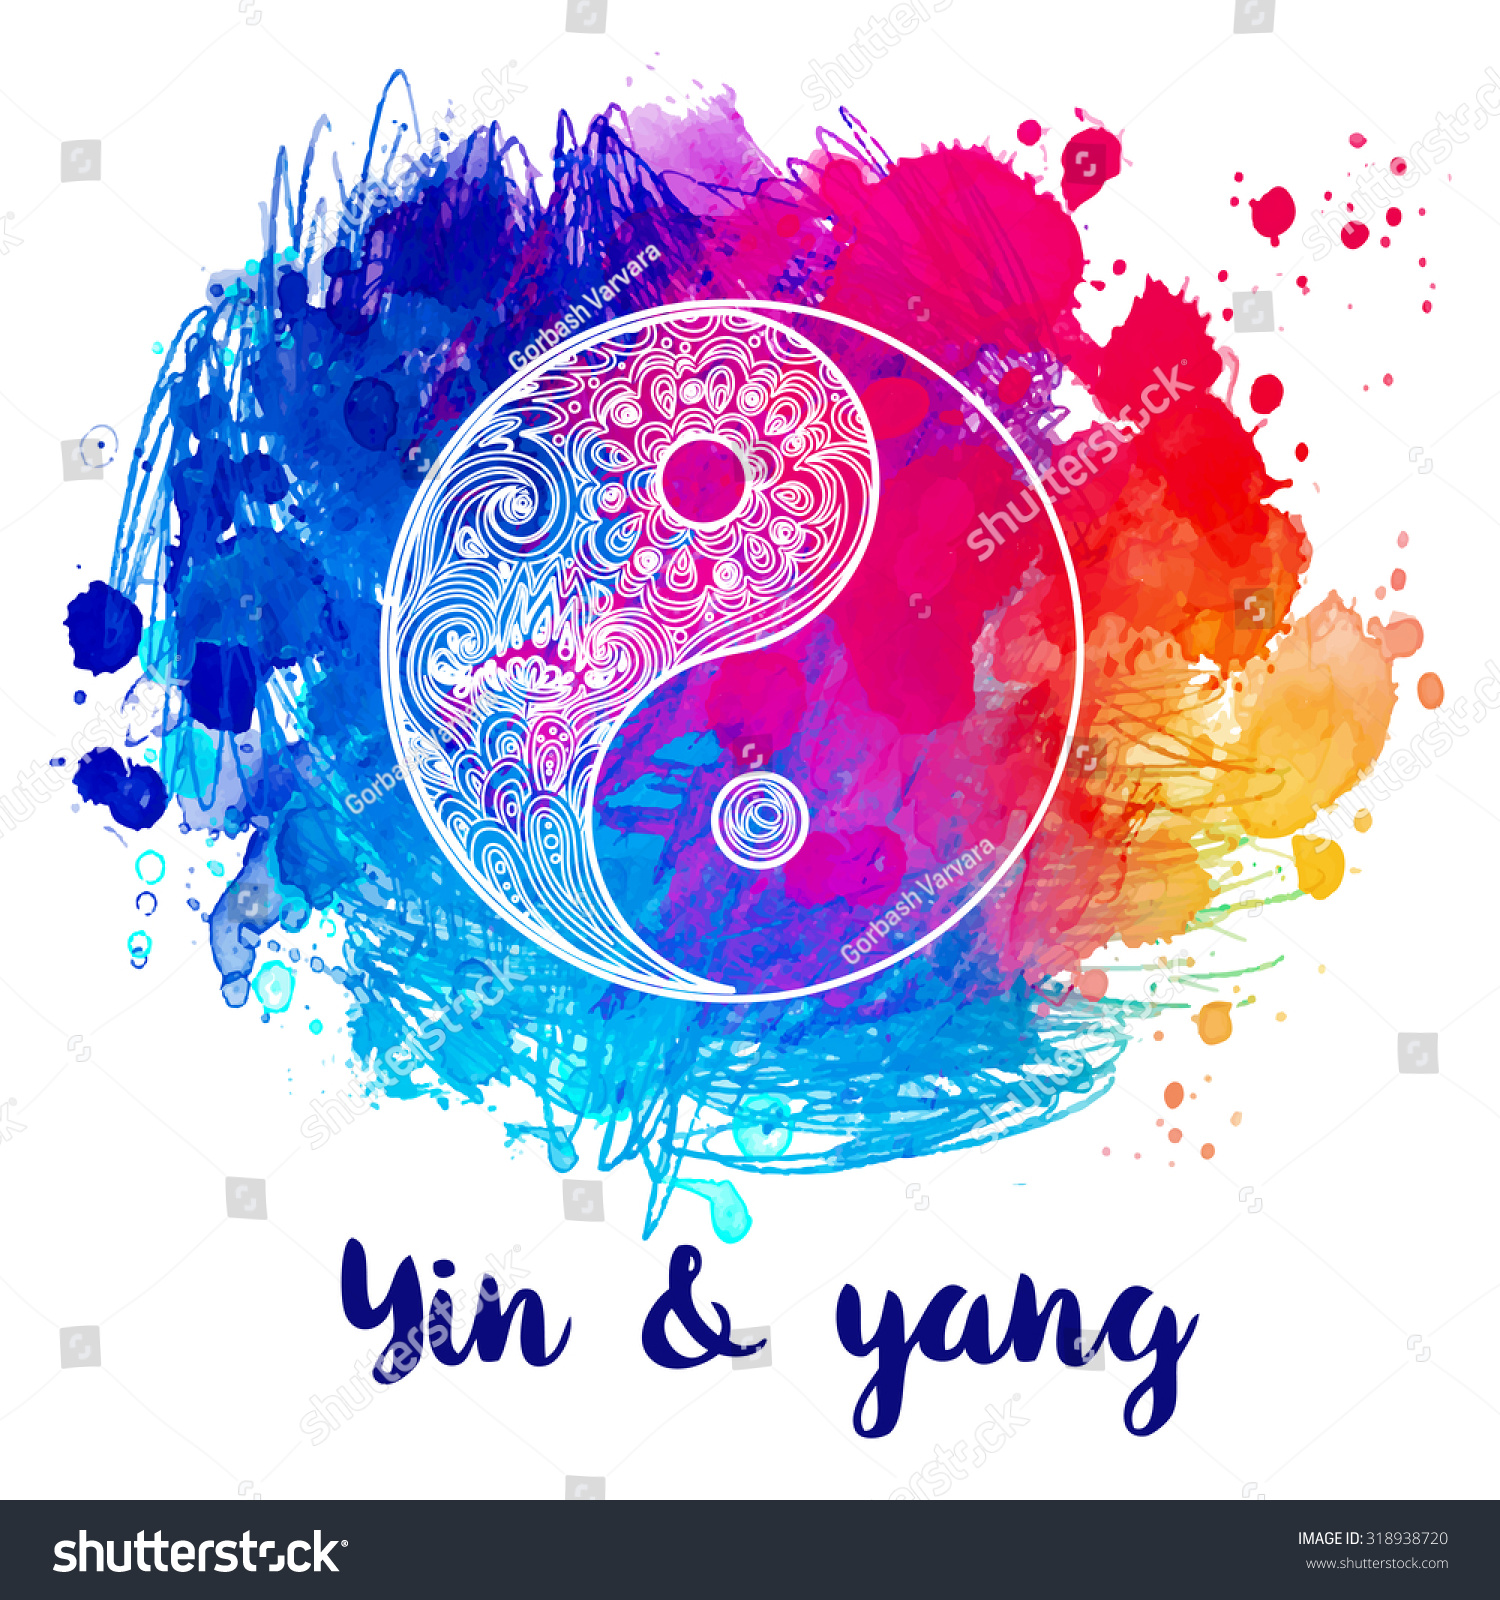 Yin yang designs colorful the image kid for Architecture yin yang